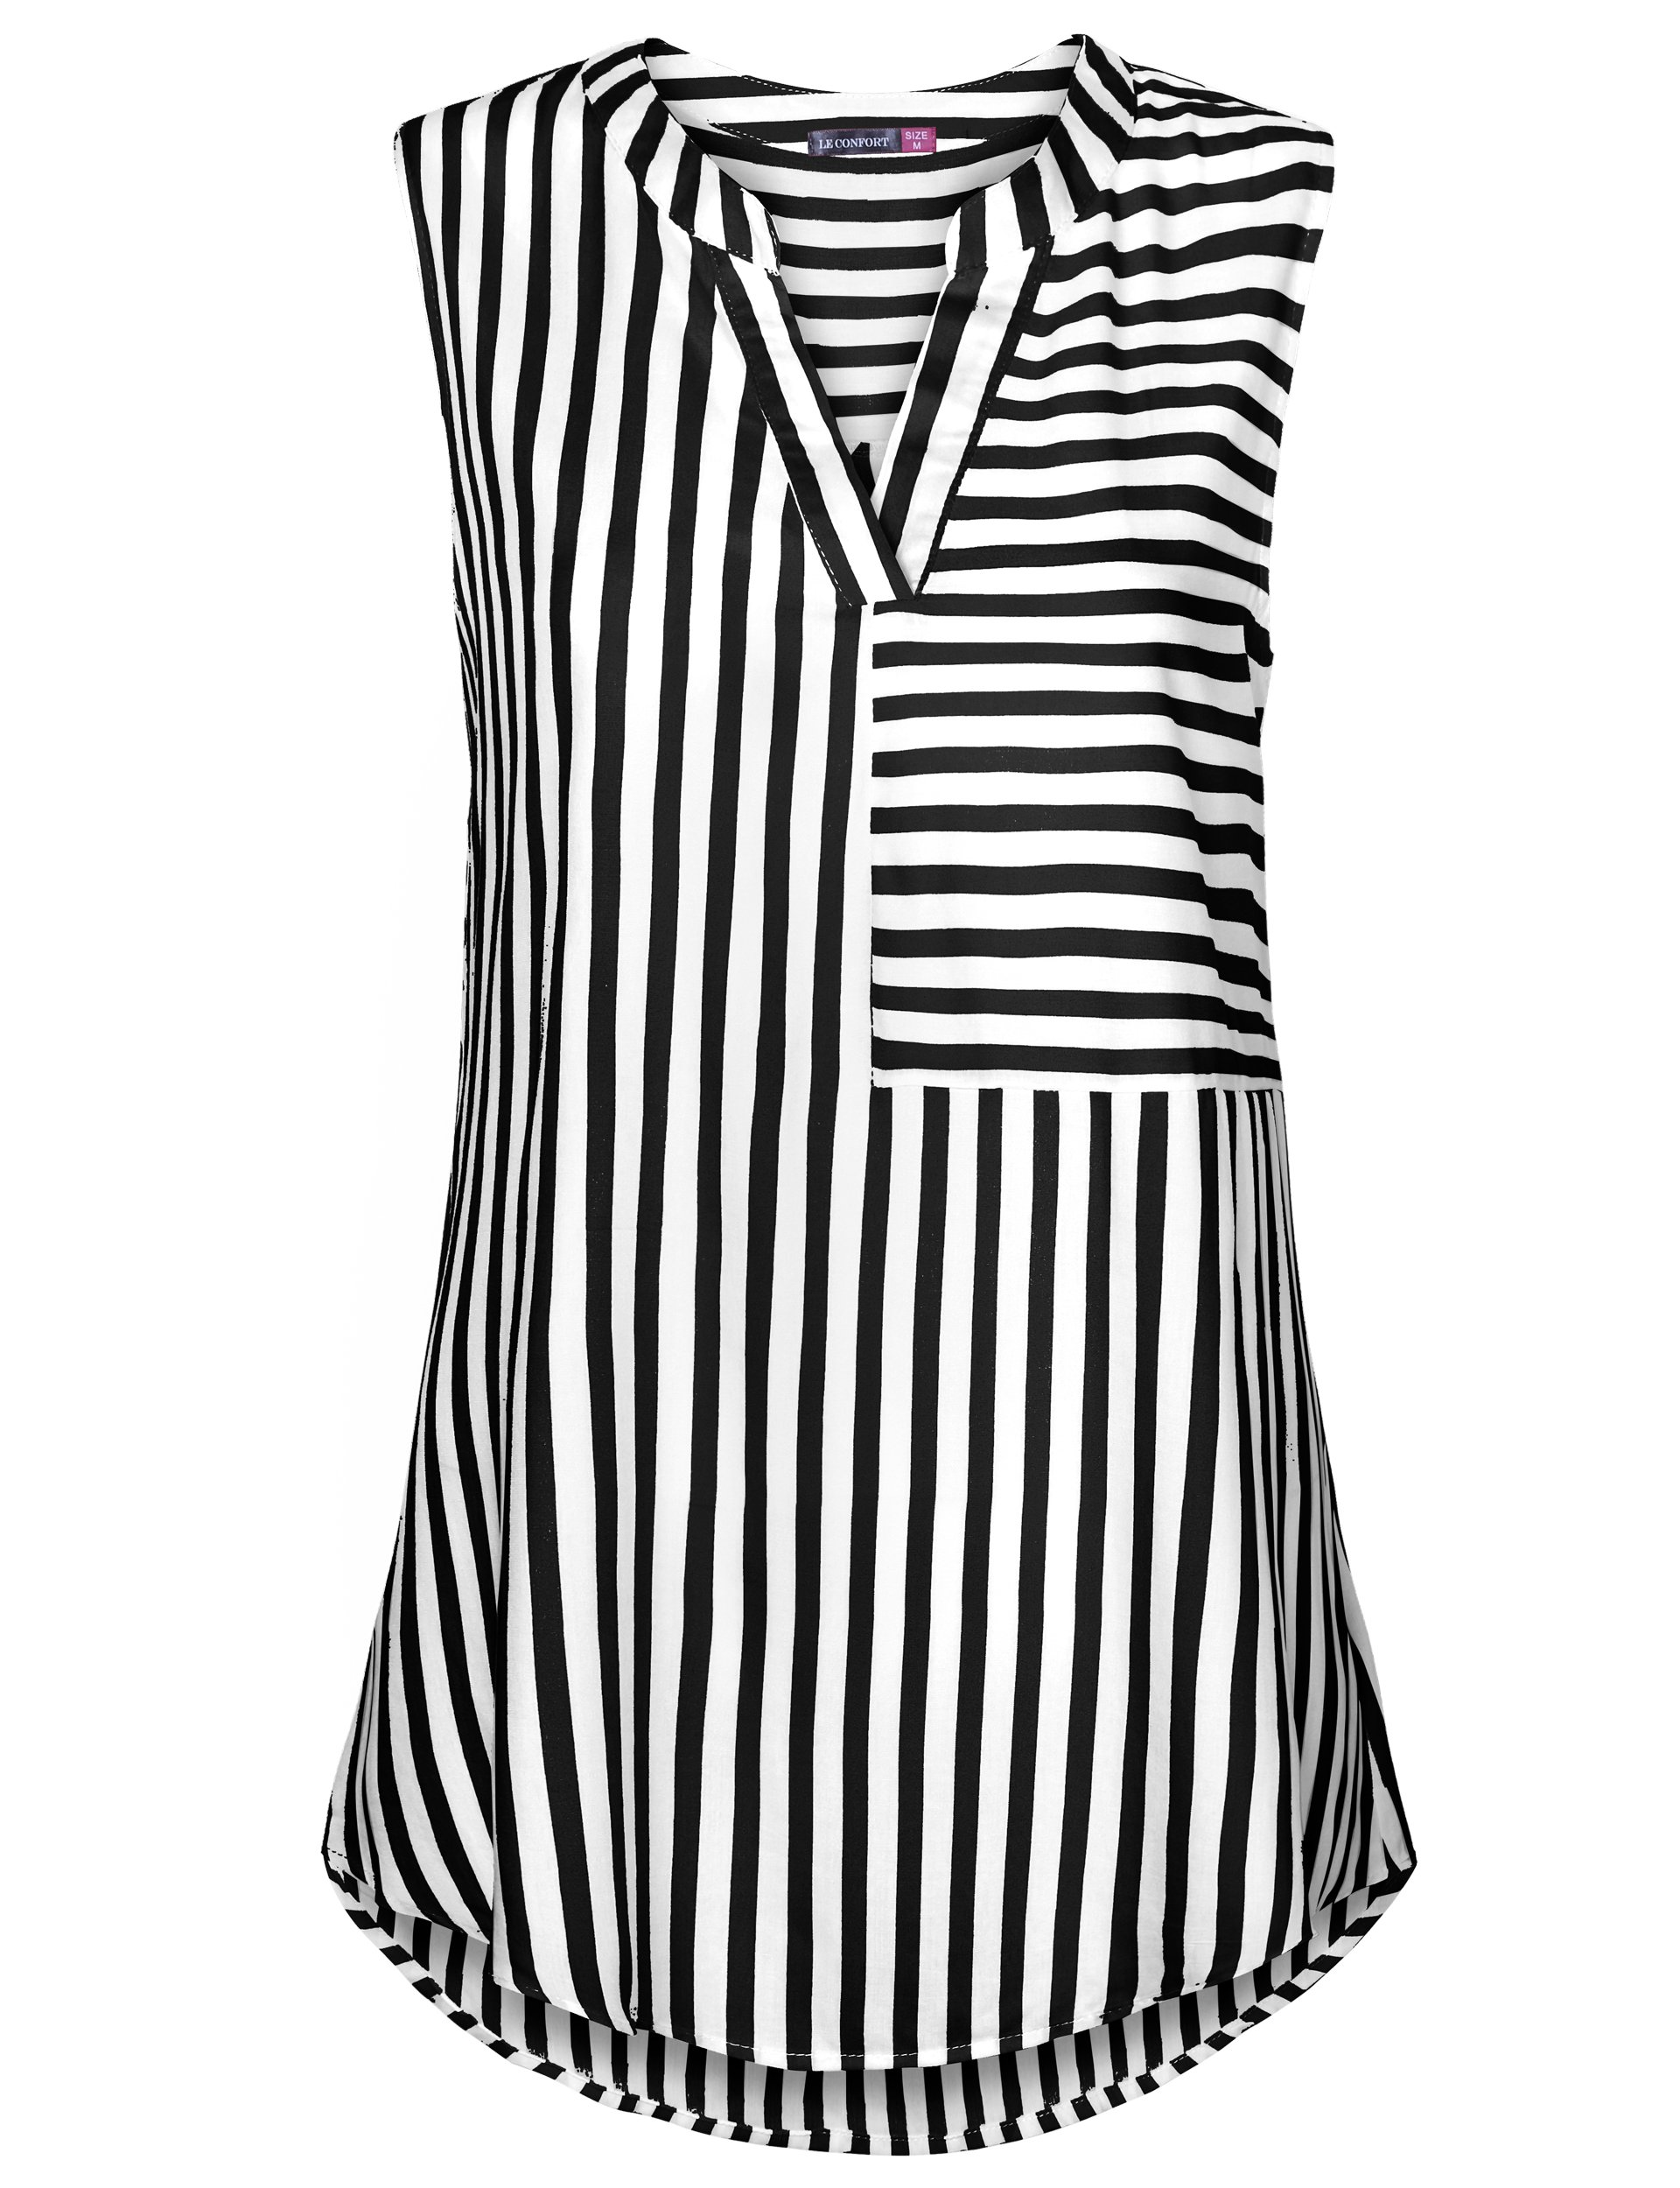 Le Vonfort Casual Blouse for Women, Women's Casual Sleeveless Striped Split V Neck Tunic Blouses Shirts for Leggings Black X-Large by Le Confort